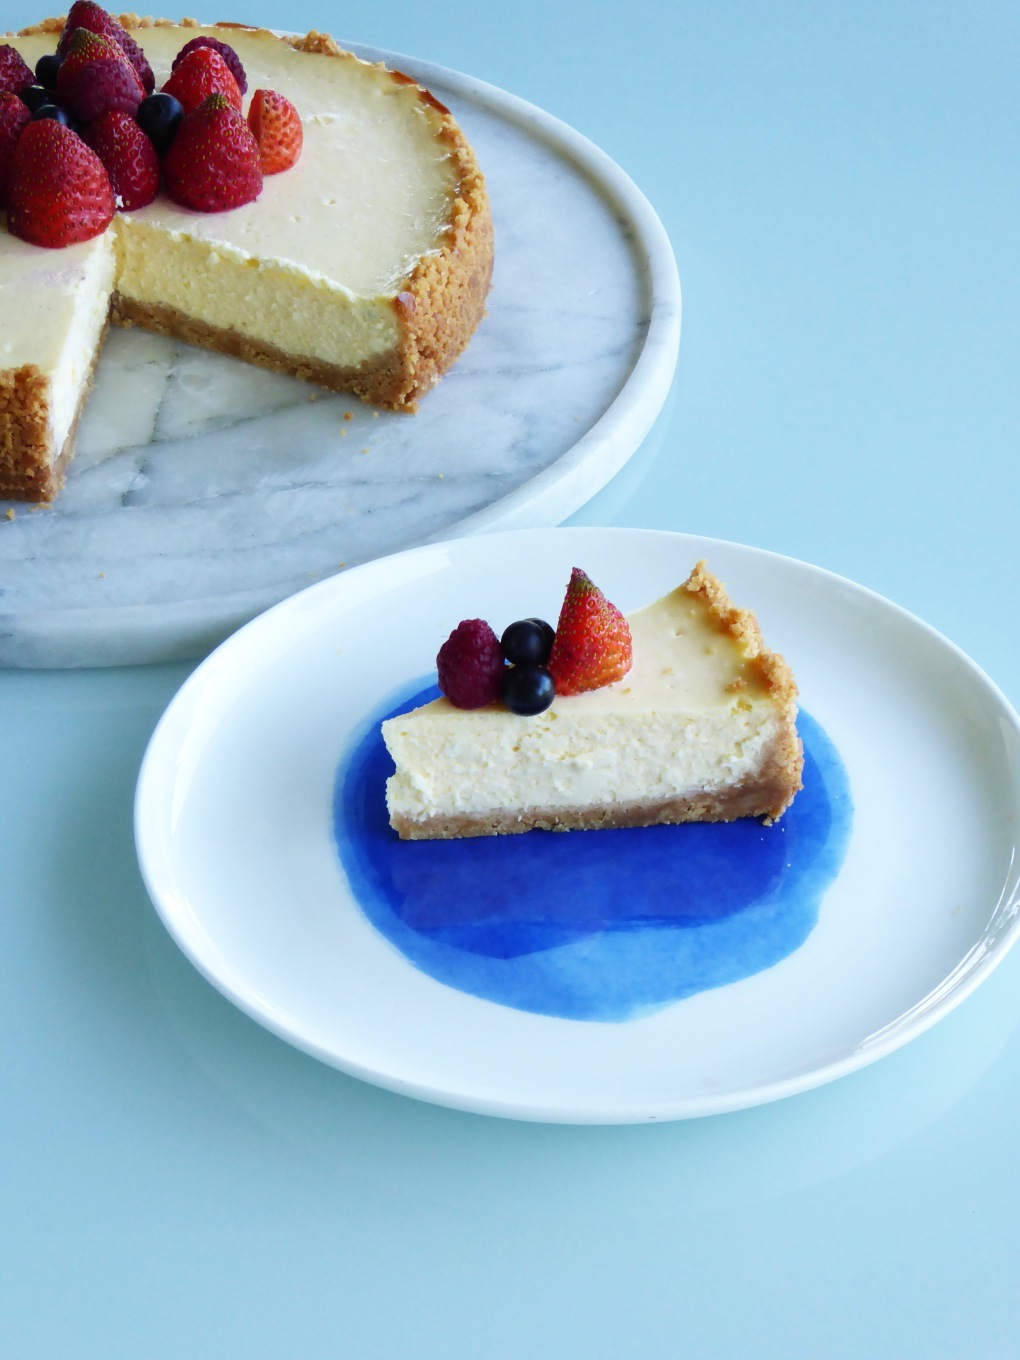 Baked cheesecake 6